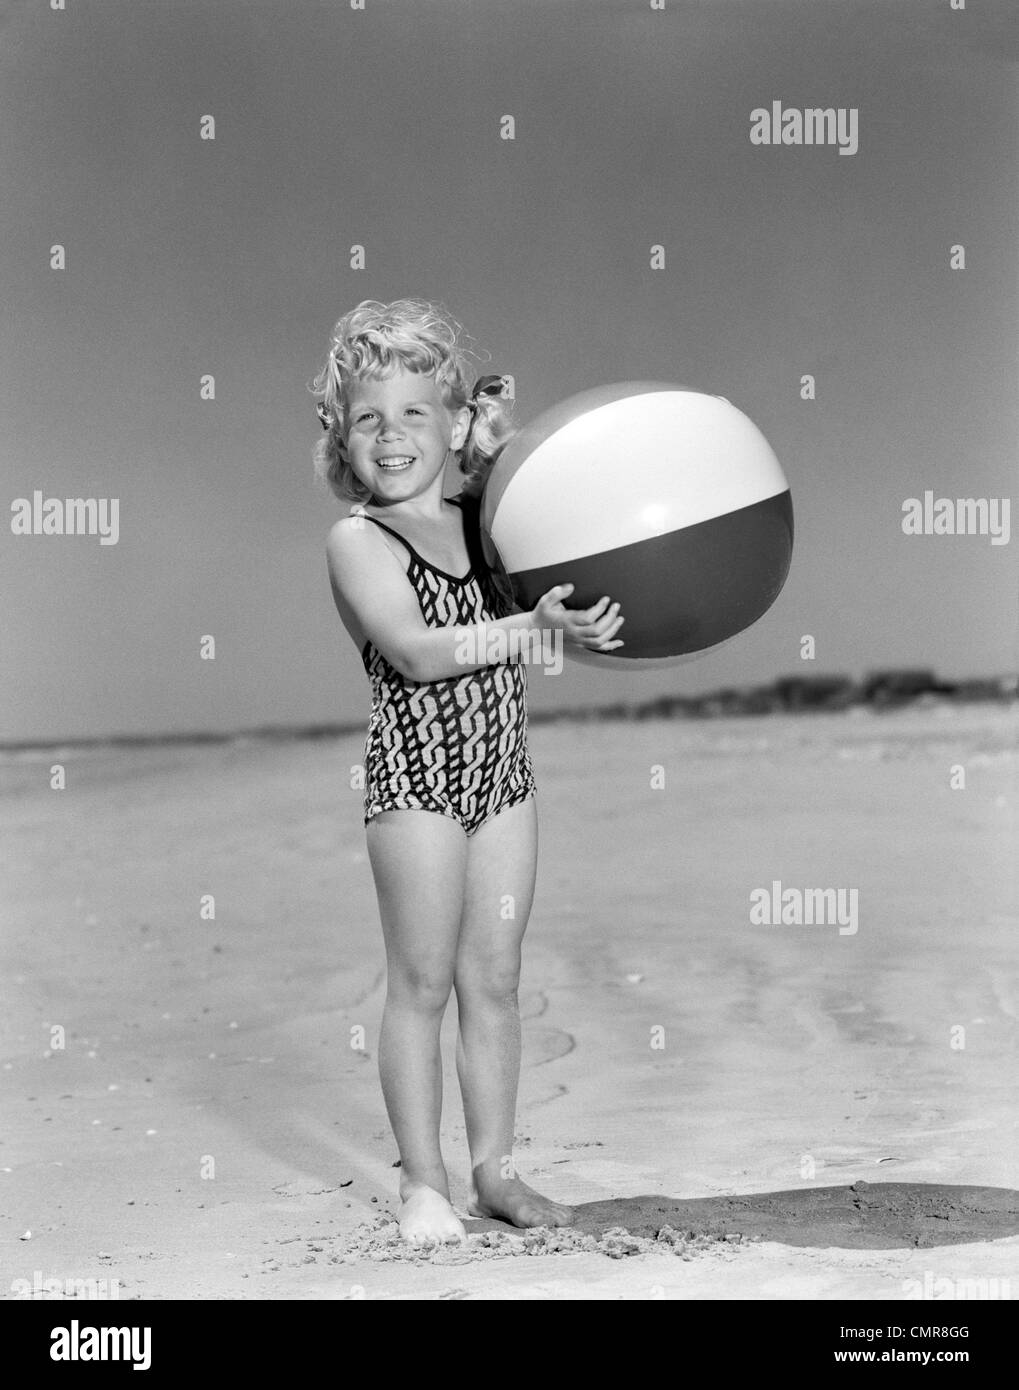 1950s SMILING LITTLE GIRL STANDING ON BEACH HOLDING BEACH BALL LOOKING AT CAMERA - Stock Image